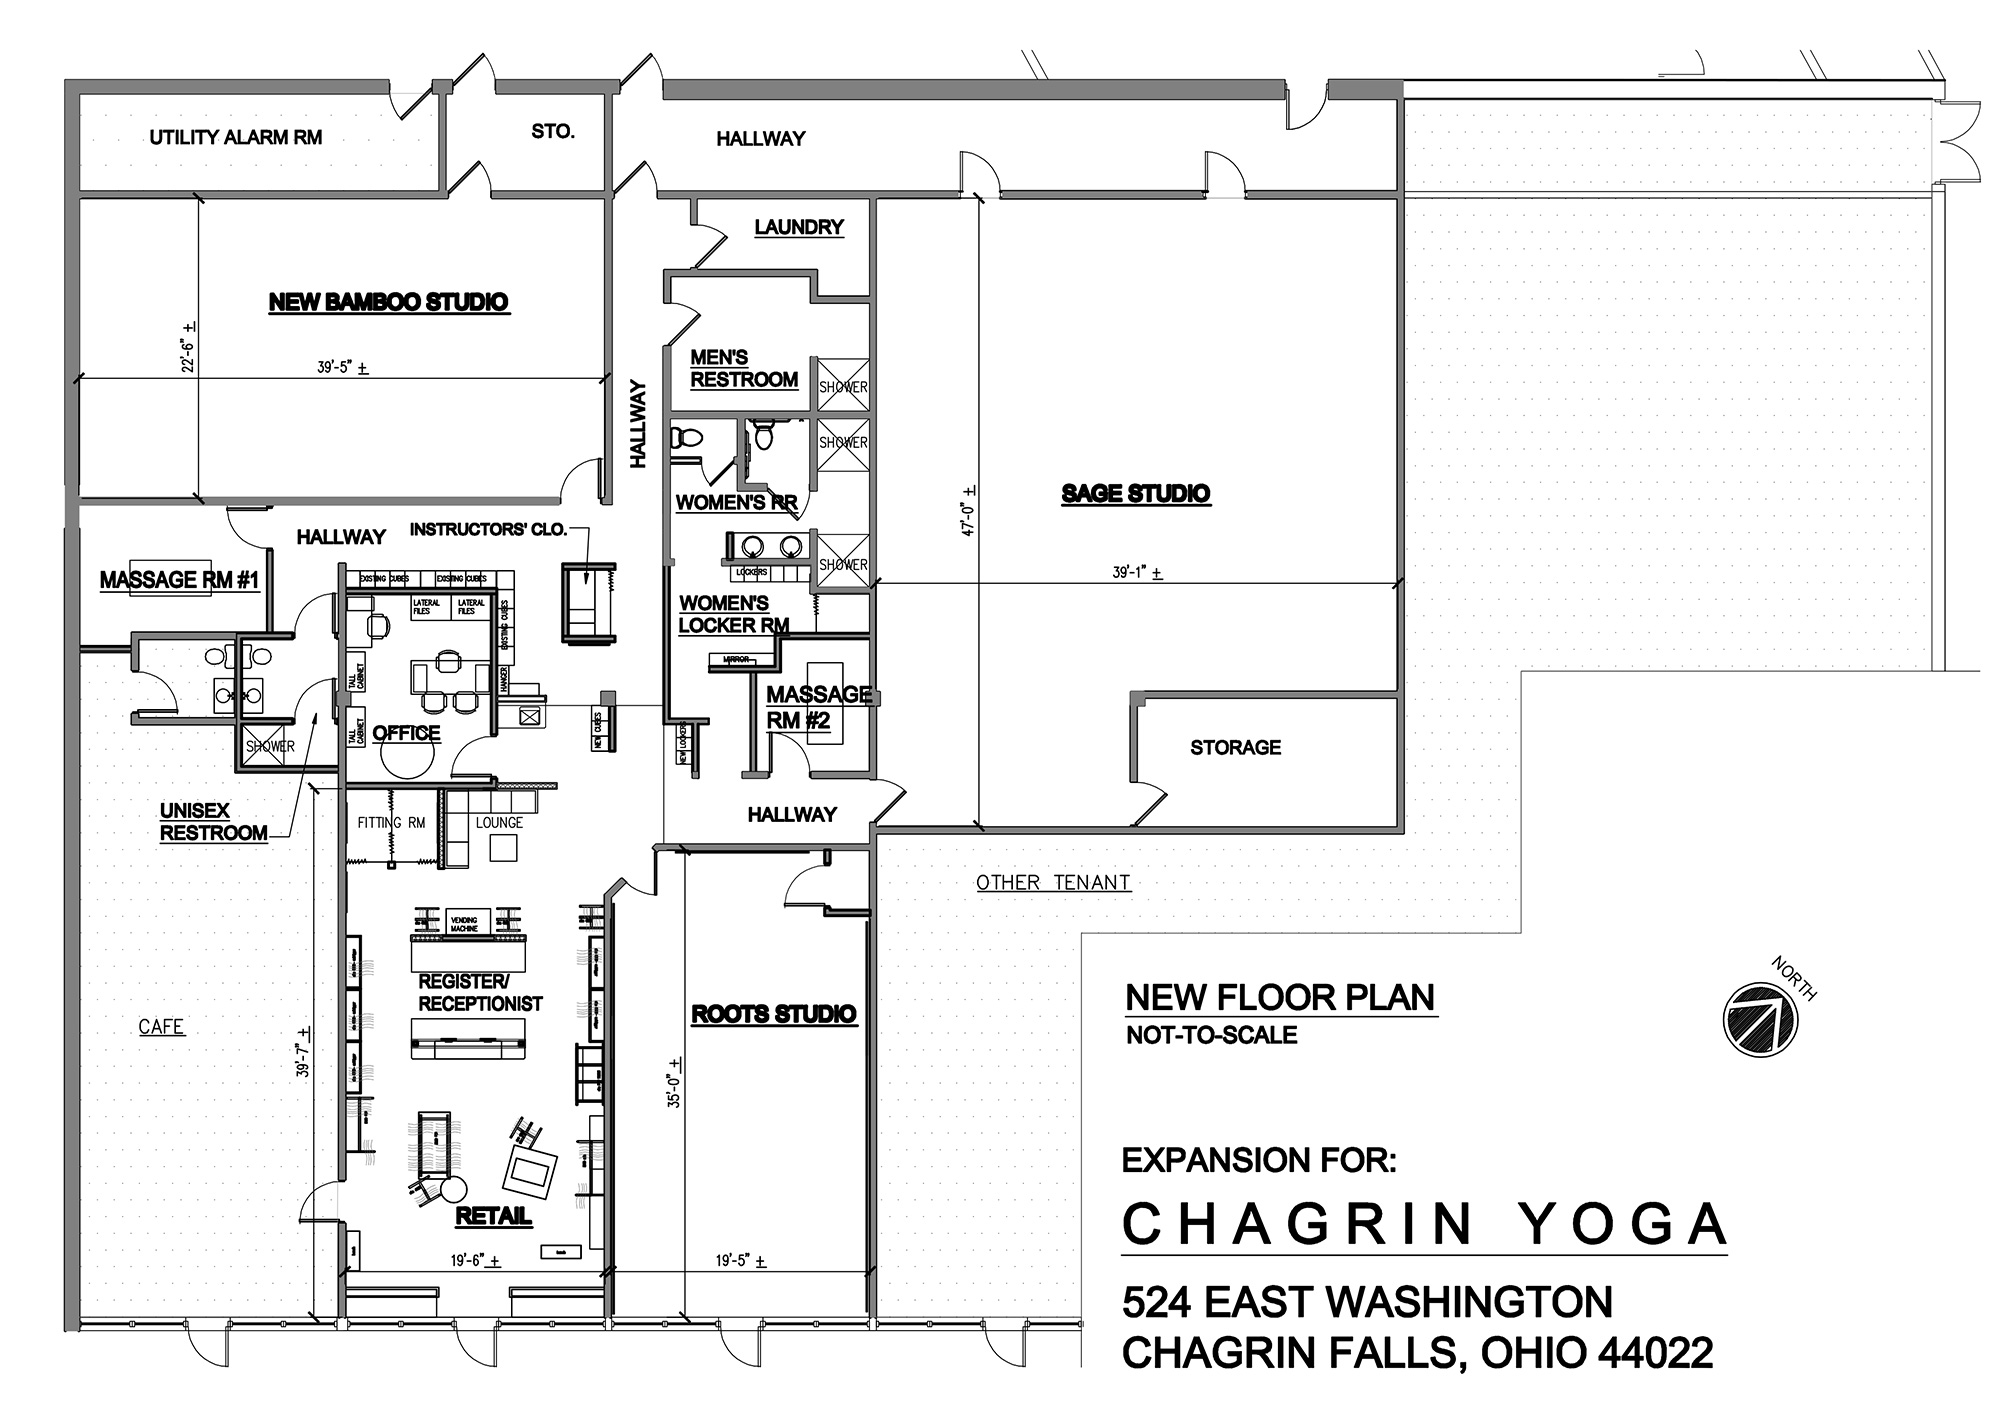 Chagrin Yoga Expansion Project